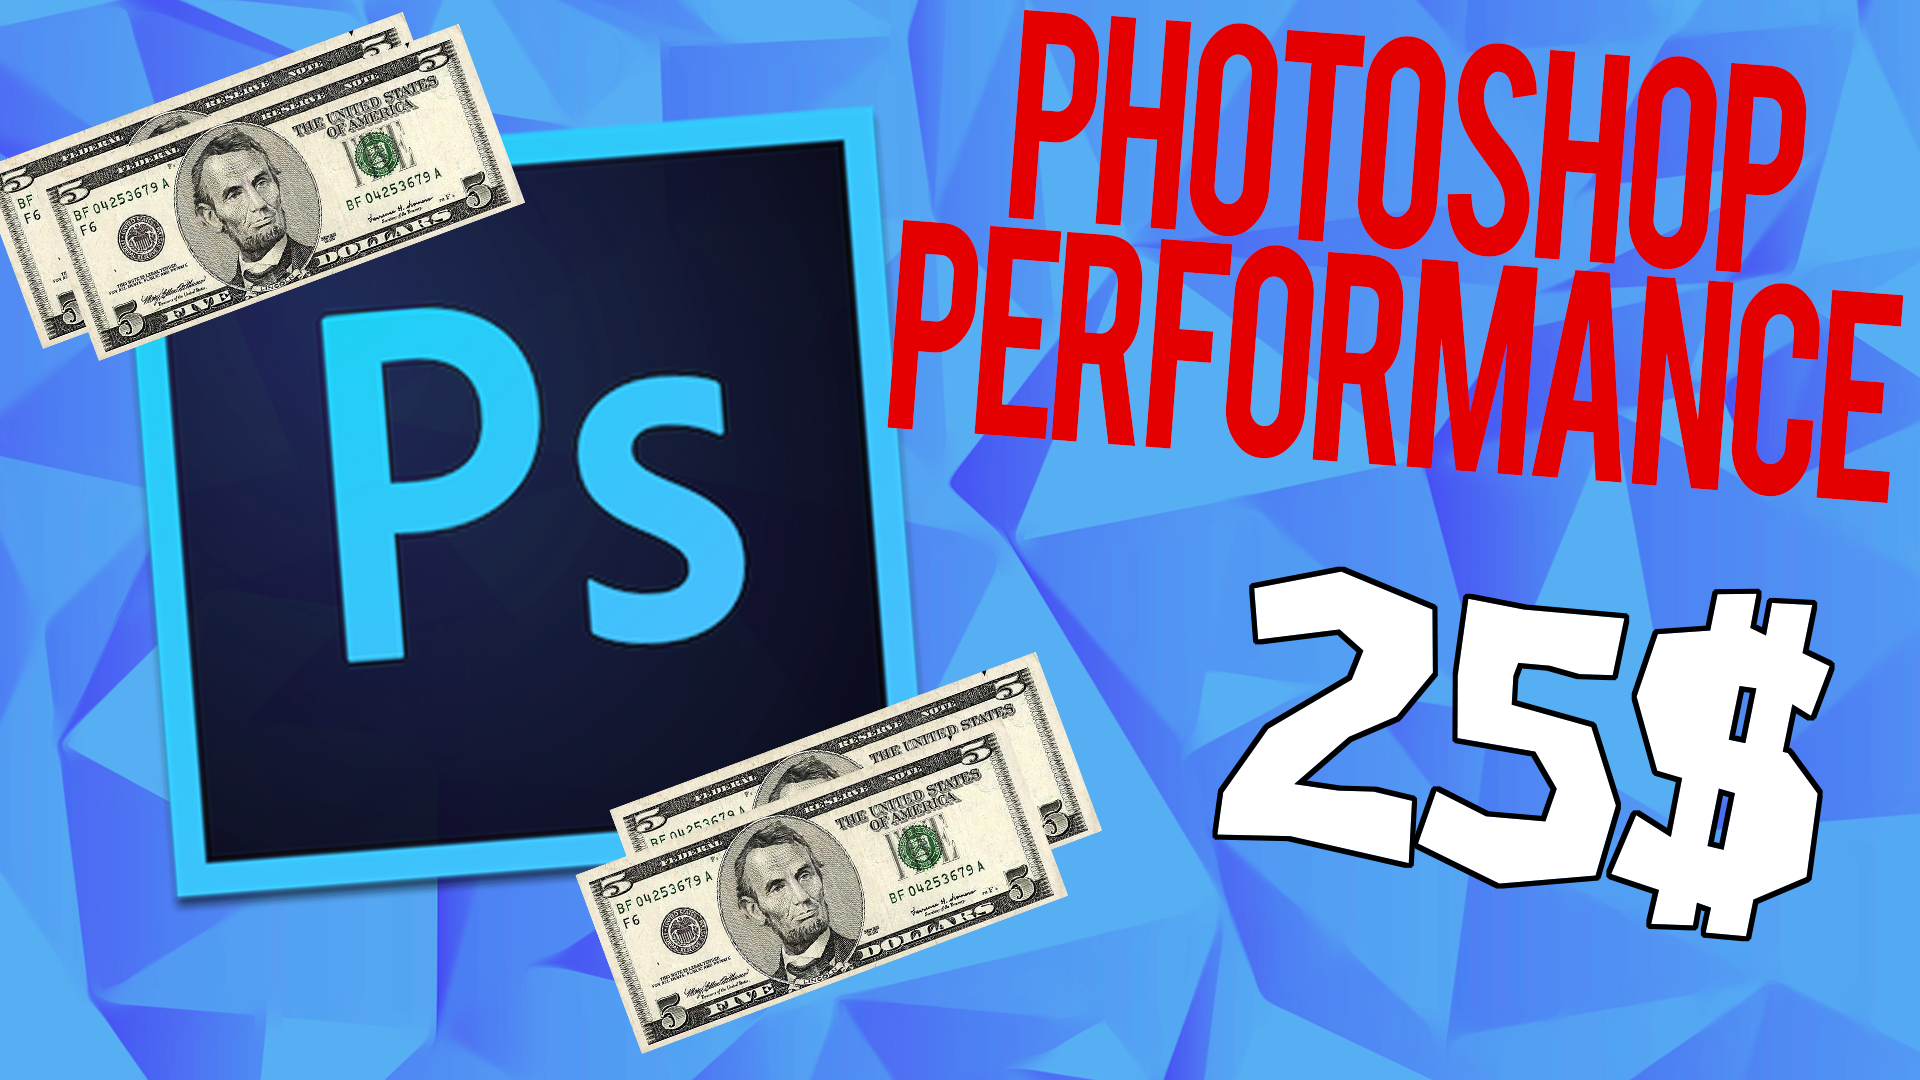 Photoshop Editing Service PRO